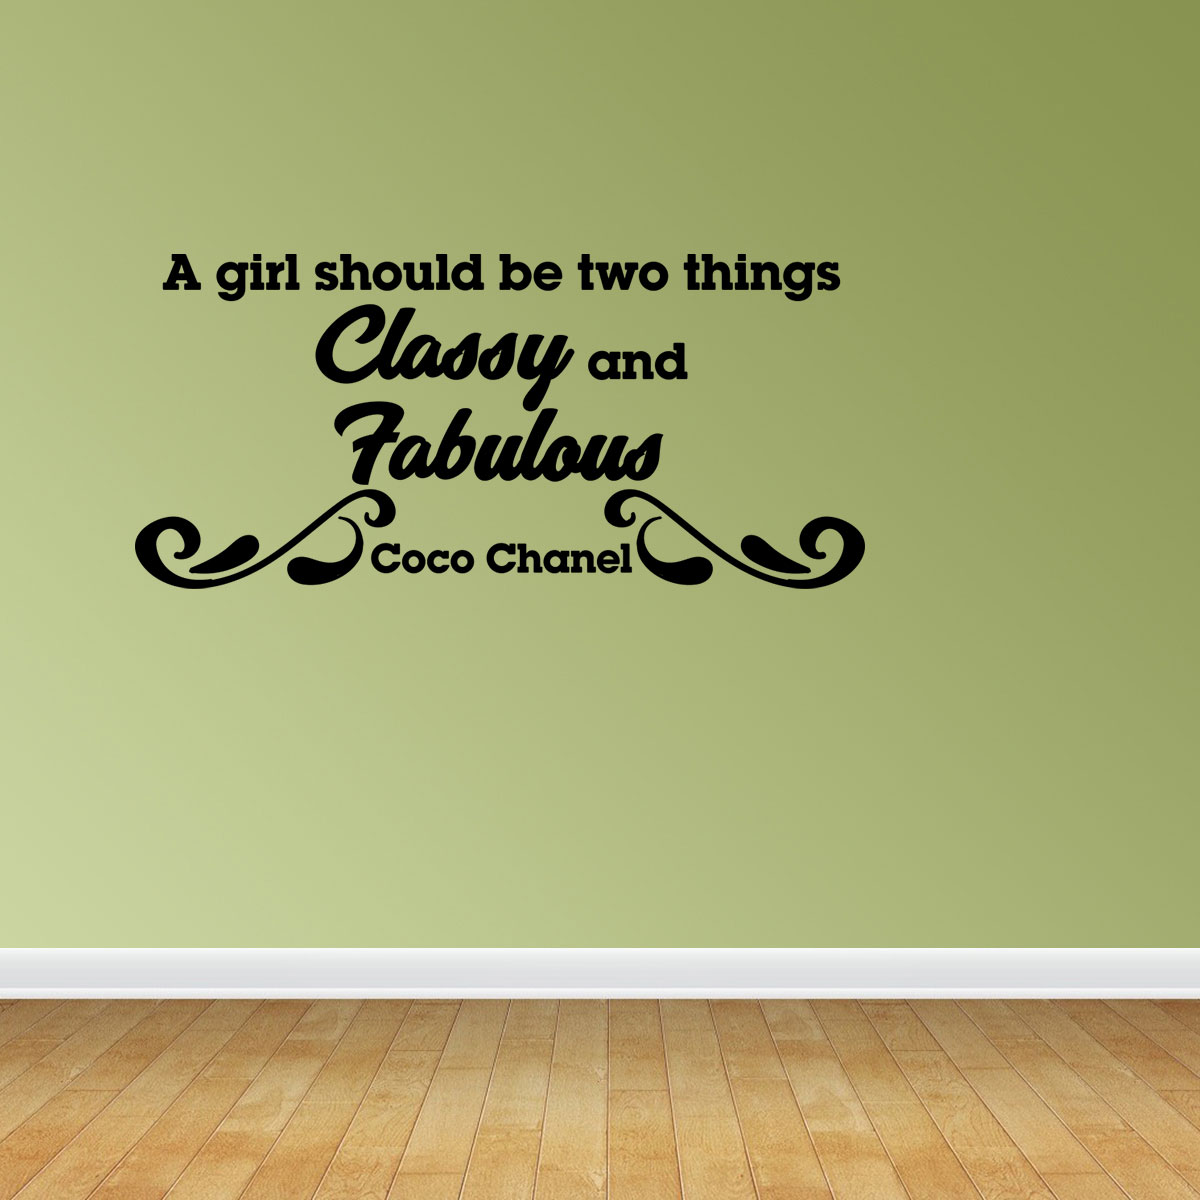 Classy And Fabulous Vinyl Wall Decals Inspirational Decal Coco Chanel JP52